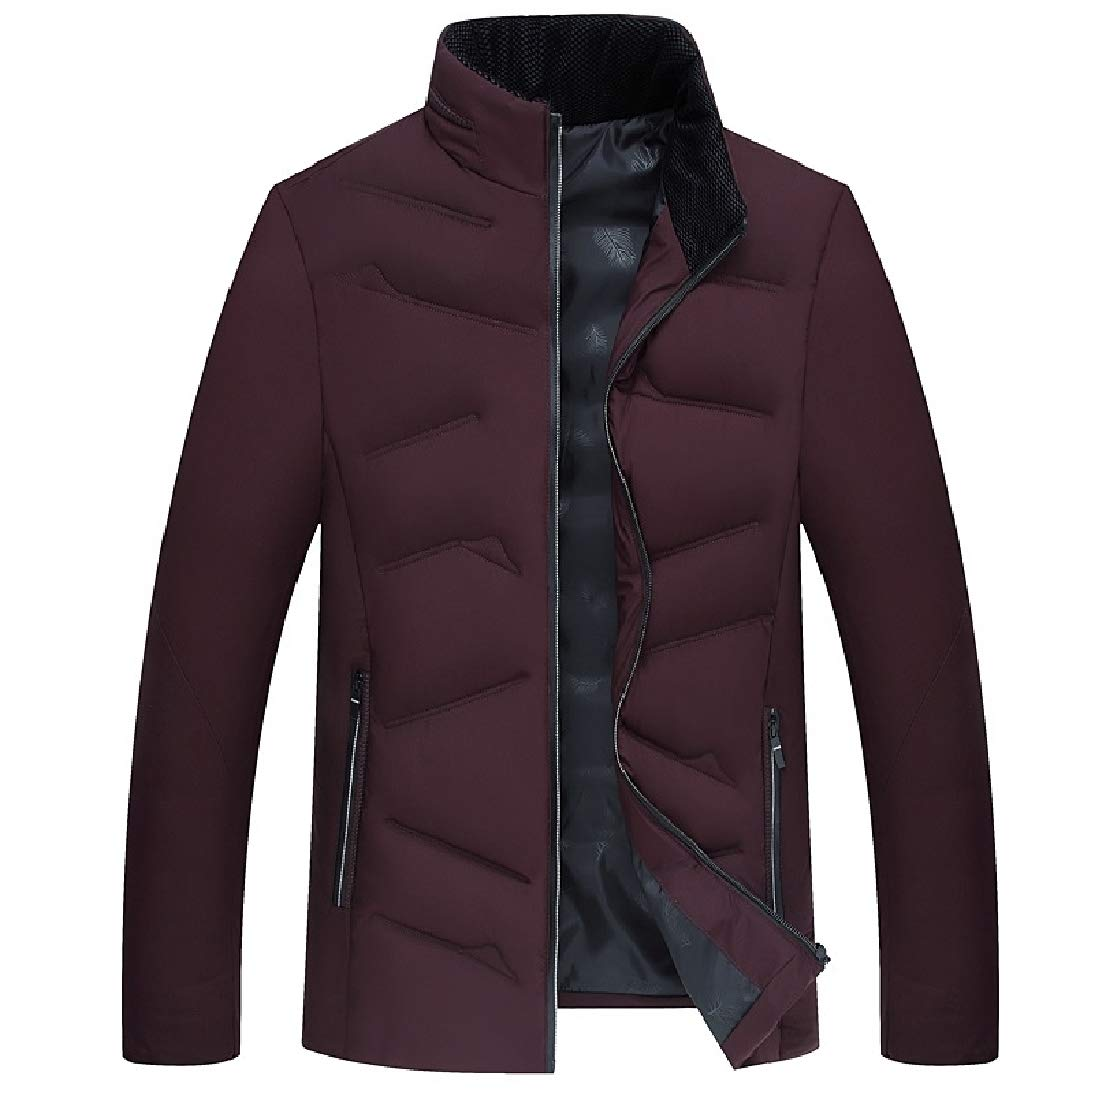 YUNY Mens Pockets Long Sleeve Zip Solid Stand Collar Oversized Puffer Jacket Wine Red 2XL